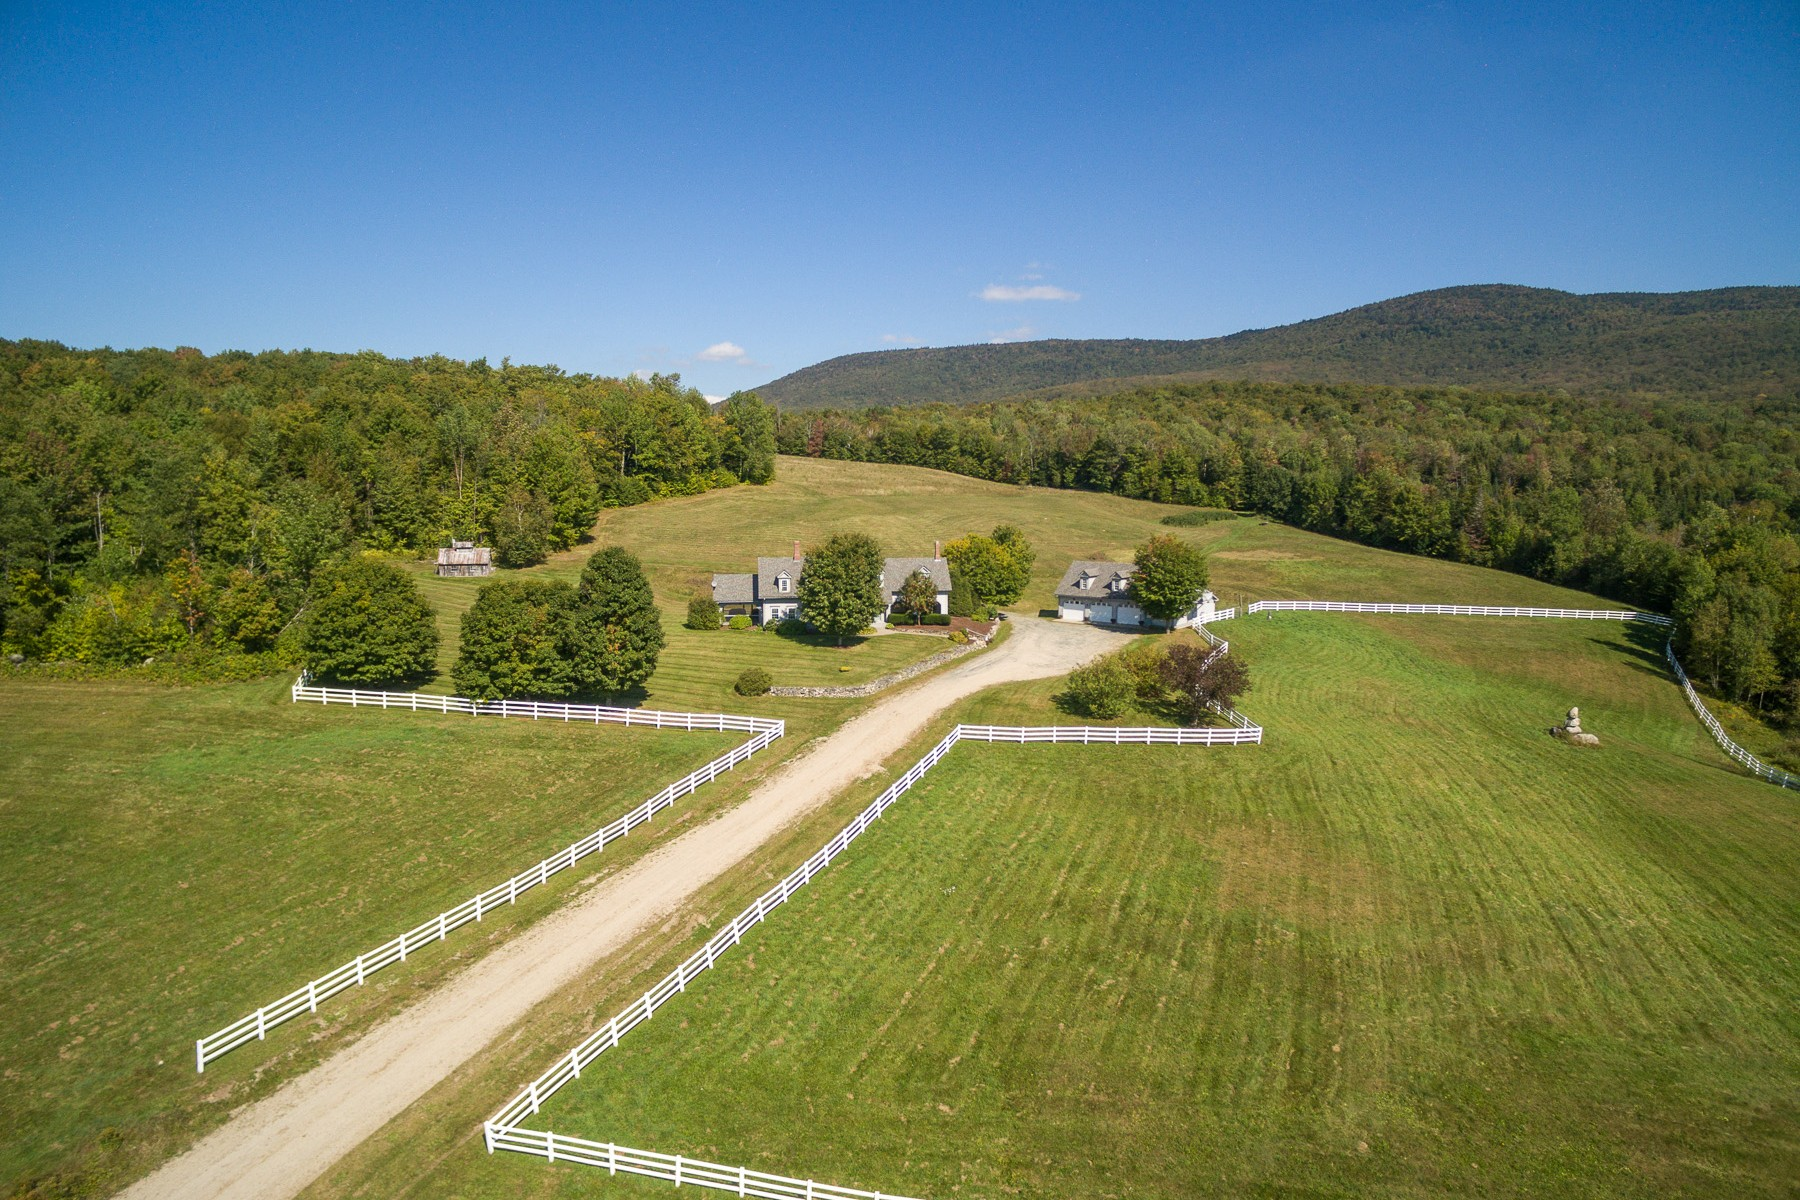 Casa Unifamiliar por un Venta en Flower Brook Meadows 637 Flower Brook Rd Burke, Vermont, 05871 Estados Unidos